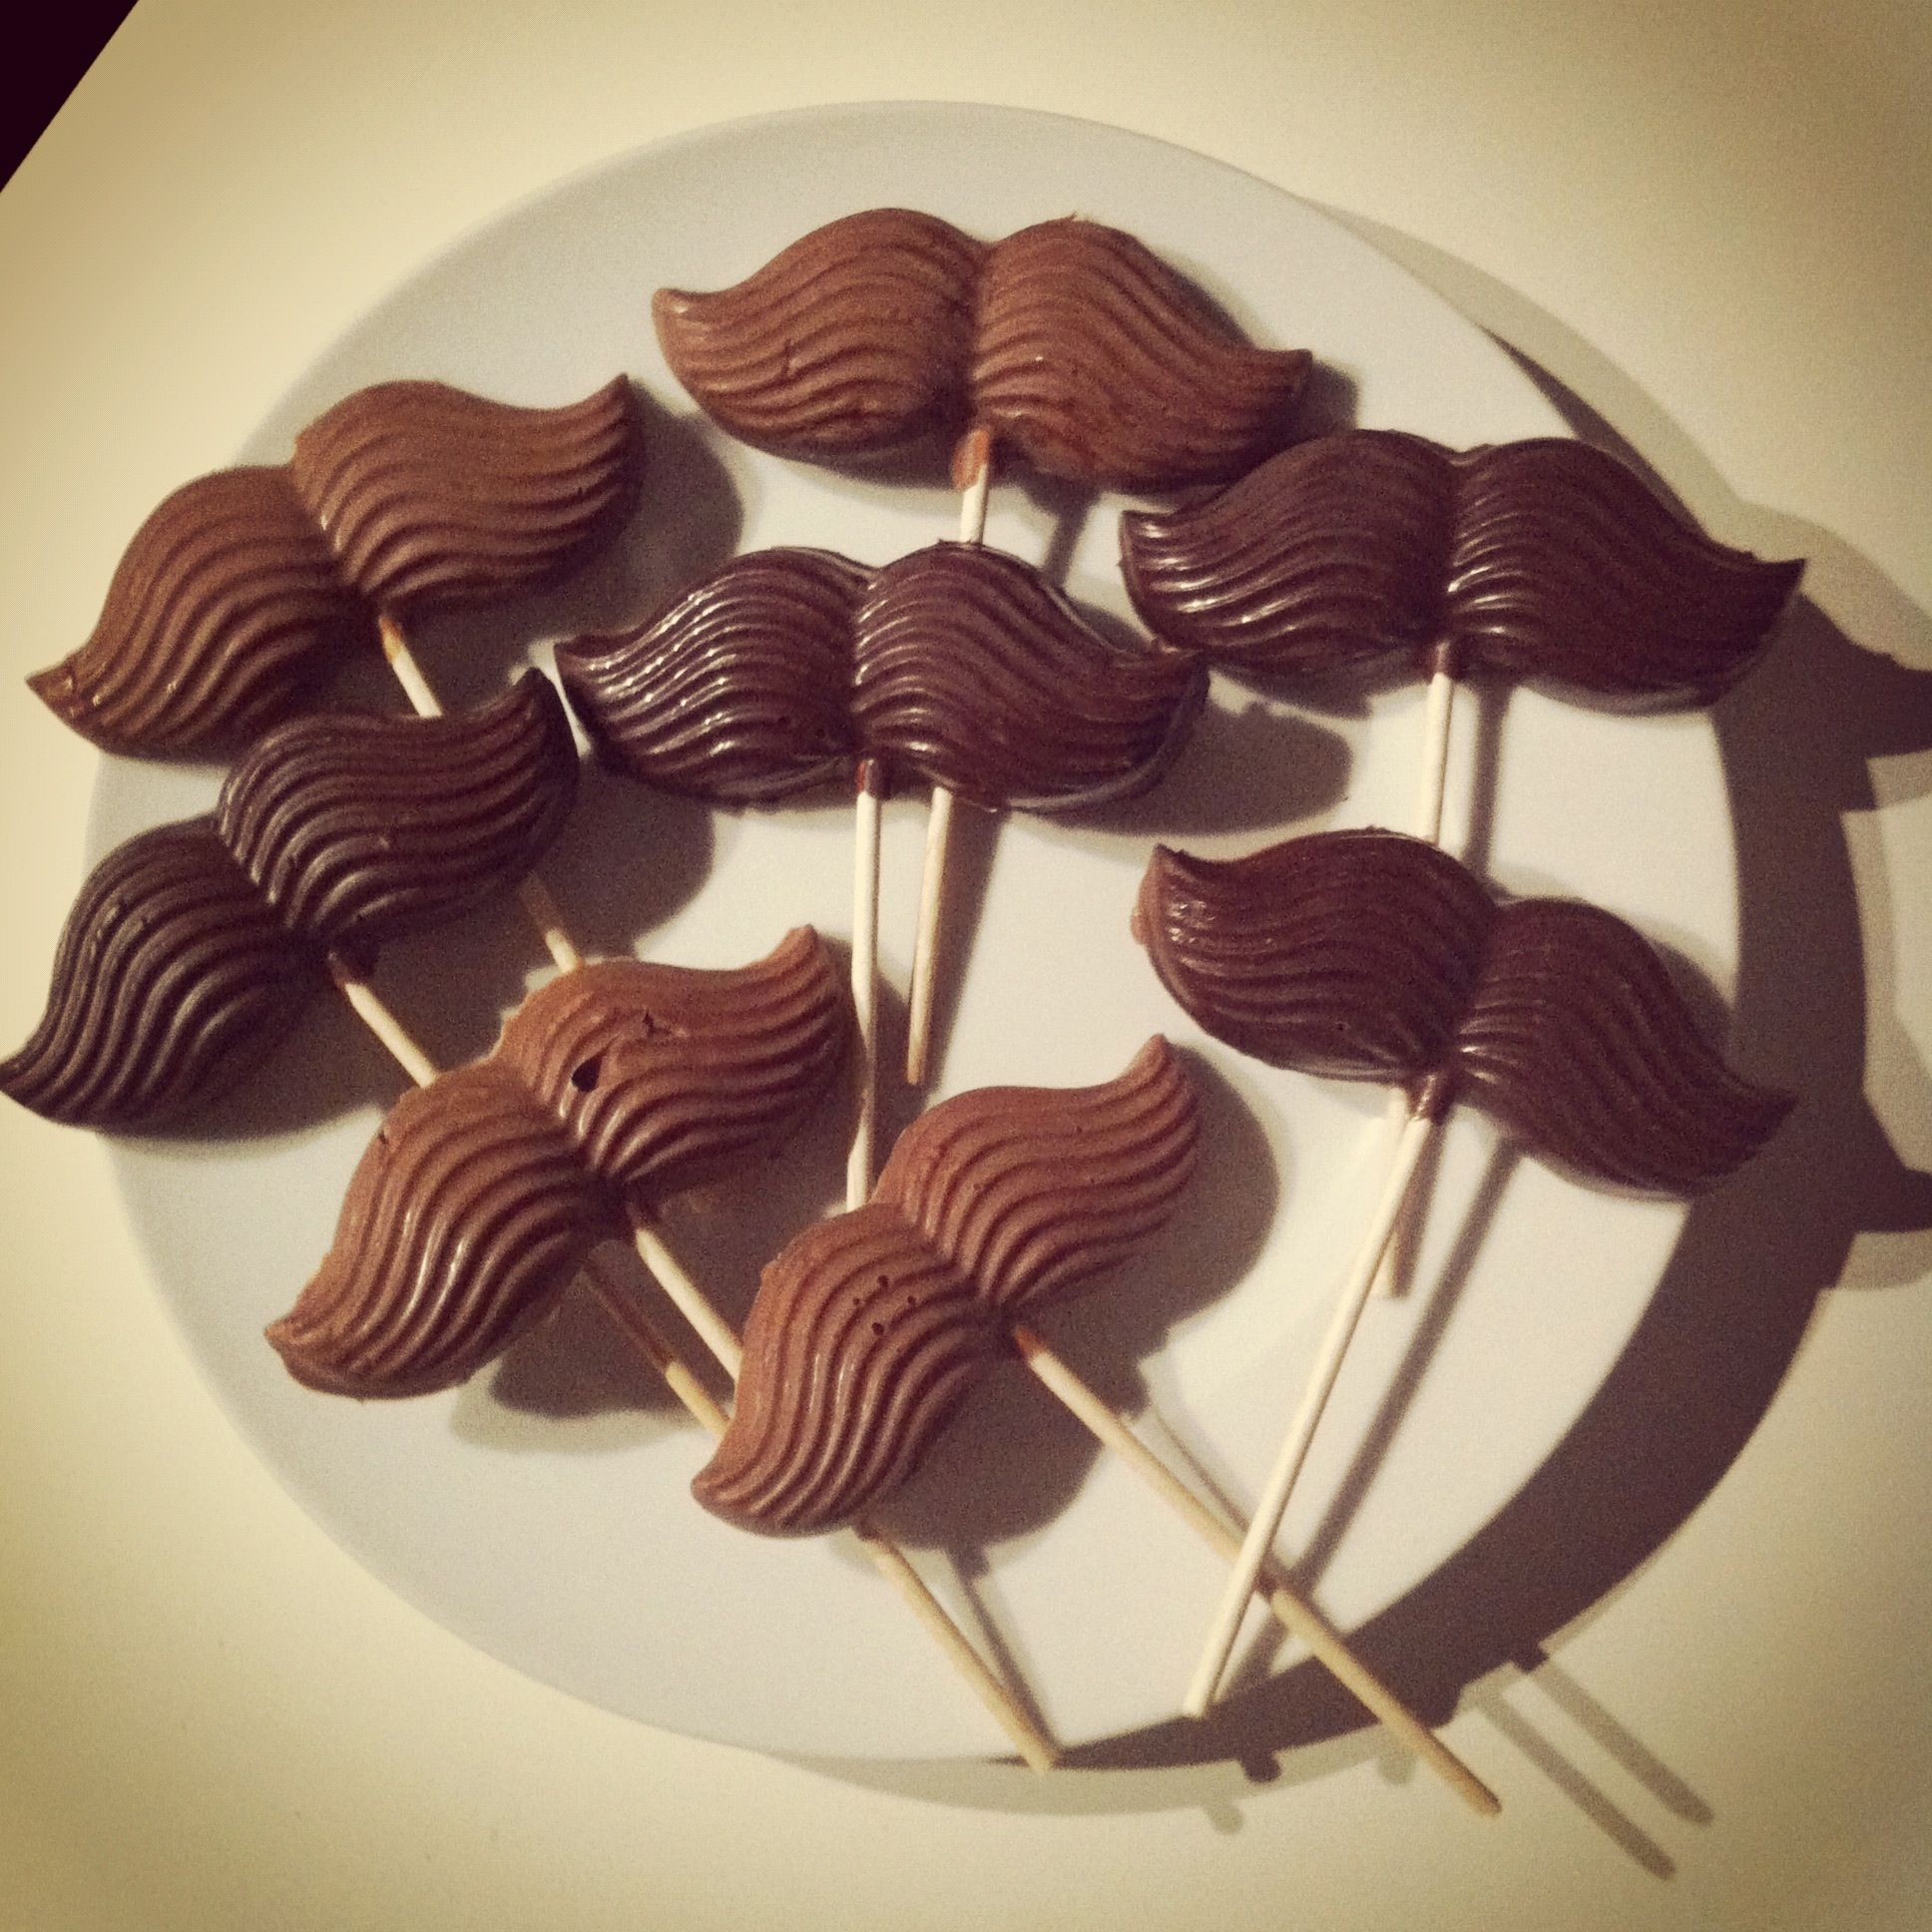 Already done: chocolate-moutaches!